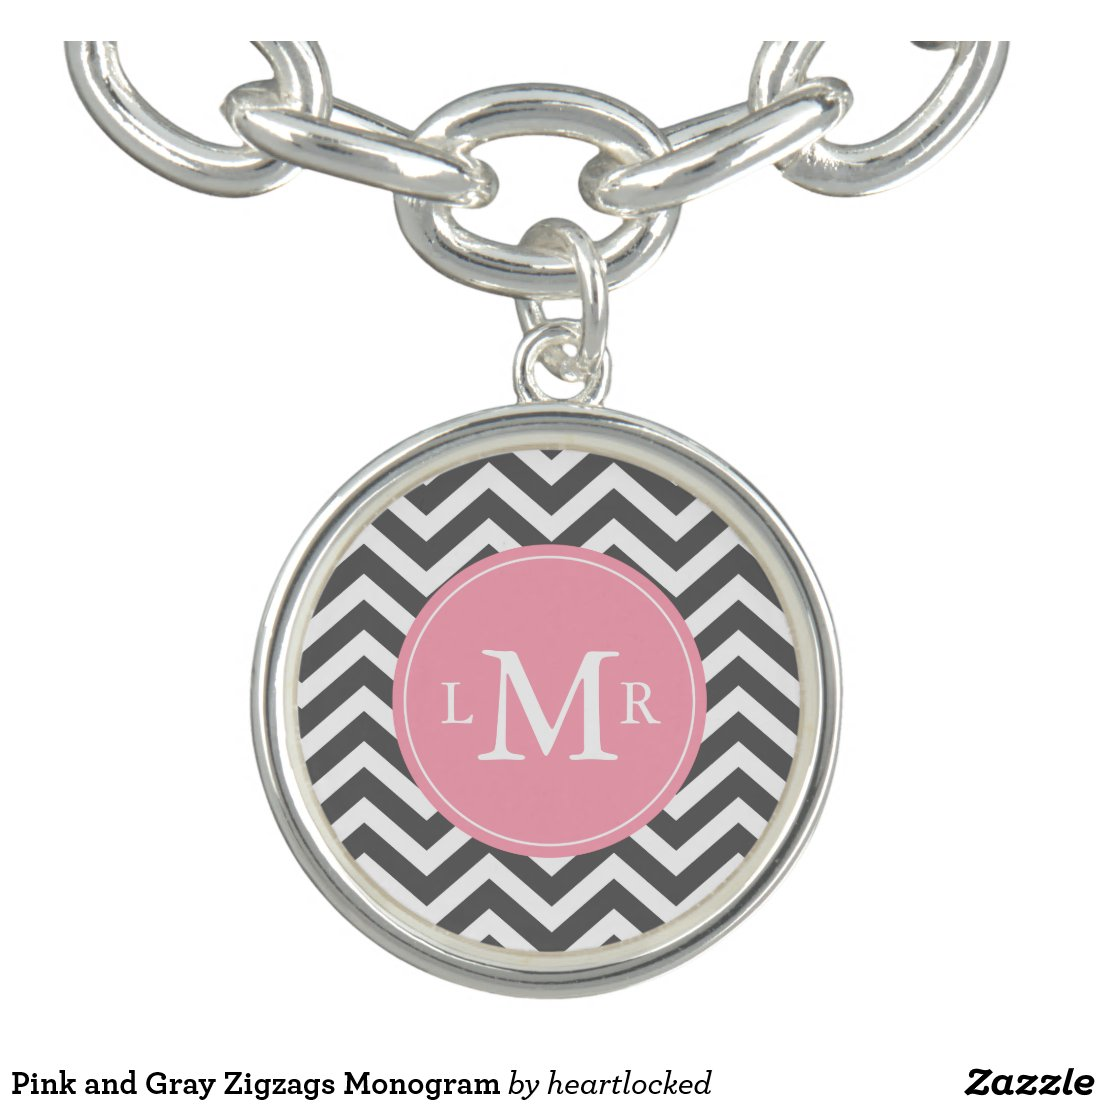 Pink and Grey Zigzags Monogram